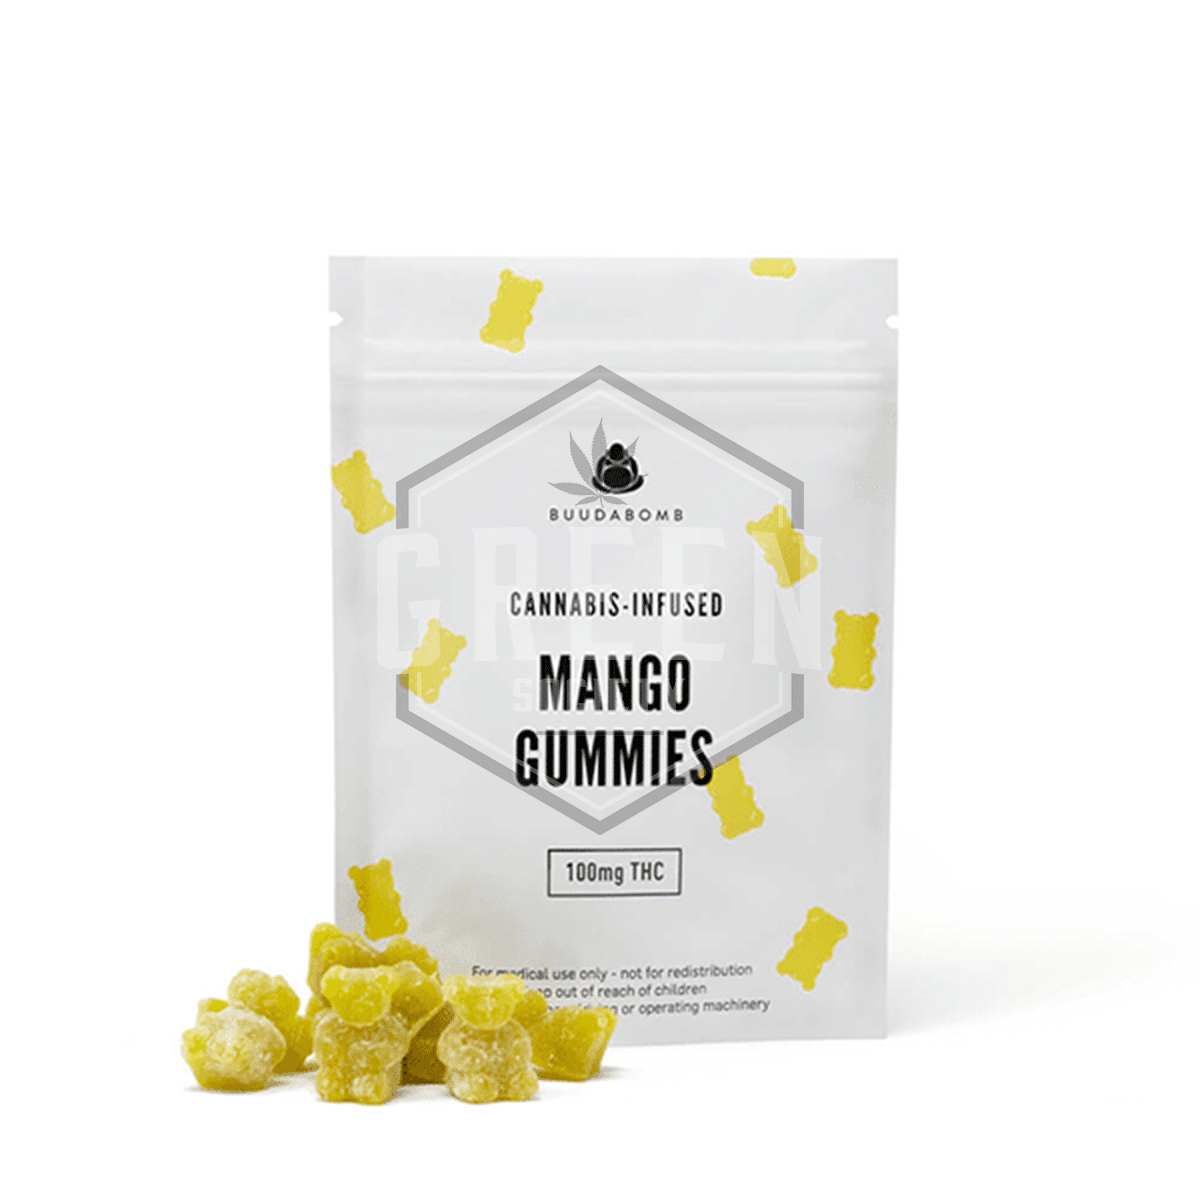 Mango Gummies by Buuda Bomb by Green Society - Image © 2018 Green Society. All Rights Reserved.